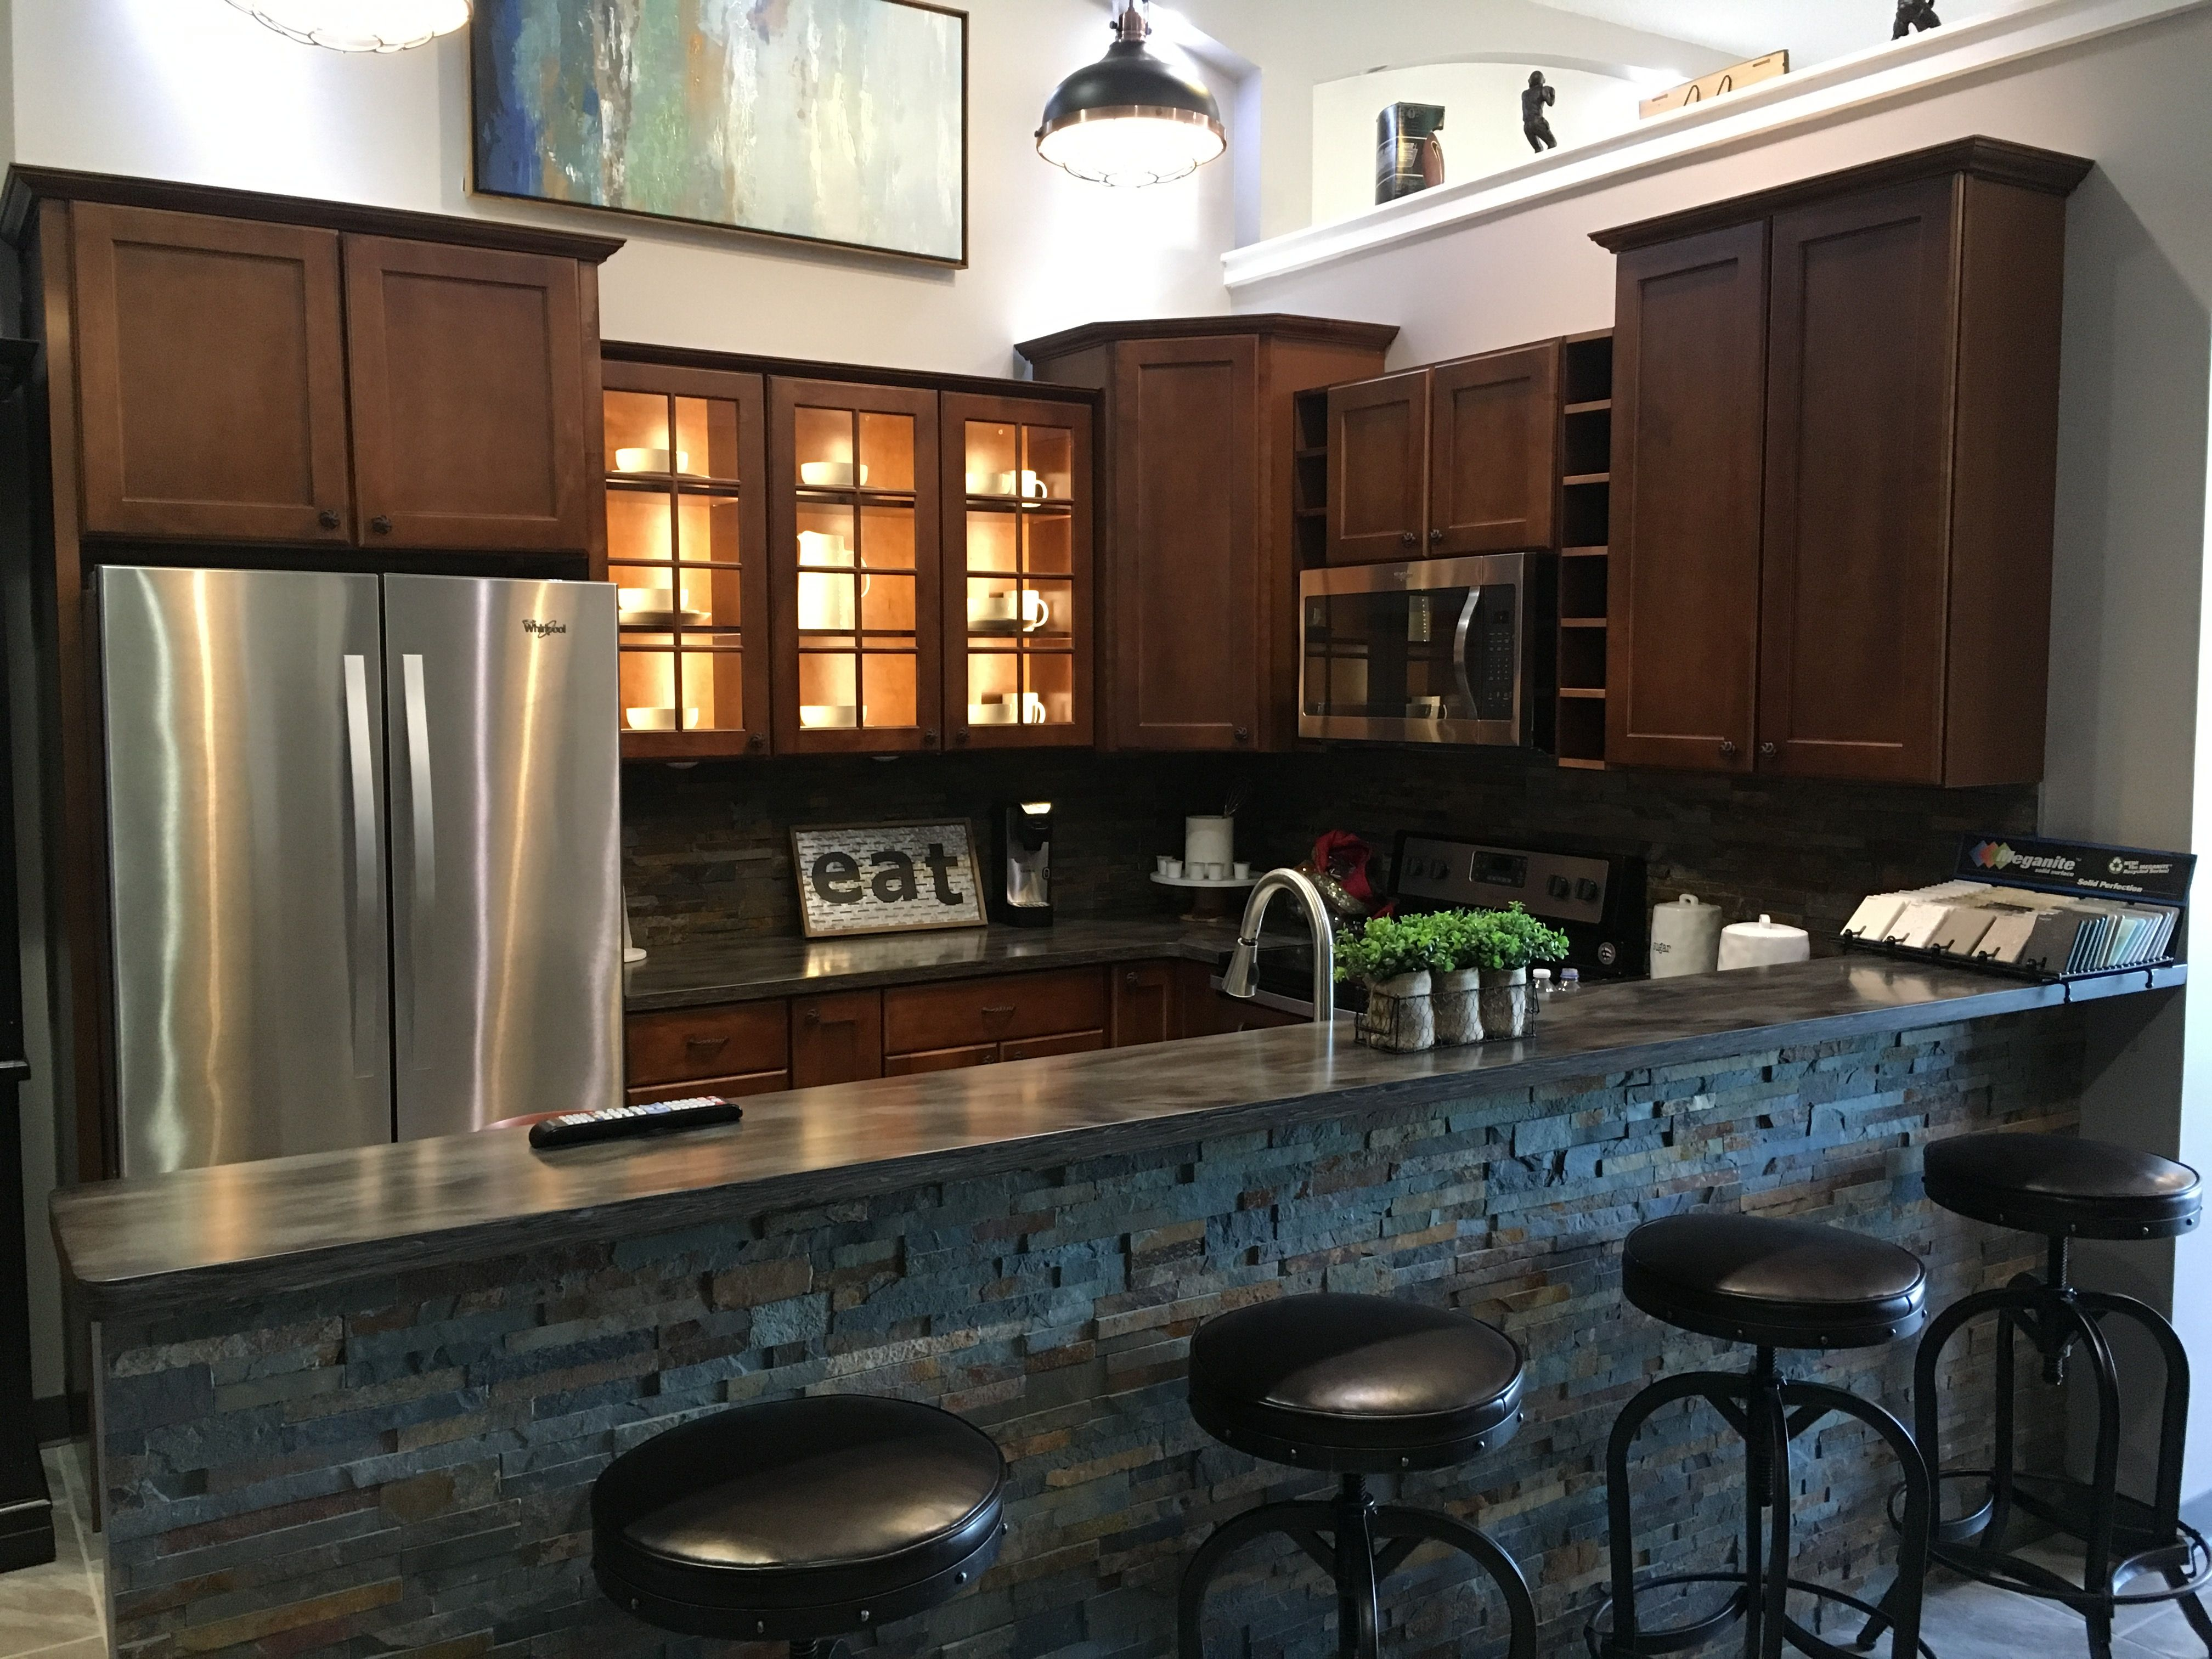 Kitchen And Bath Design Quad Cities Remodeled Kitchen With Stone Bar Wall Decor For A Finished Look